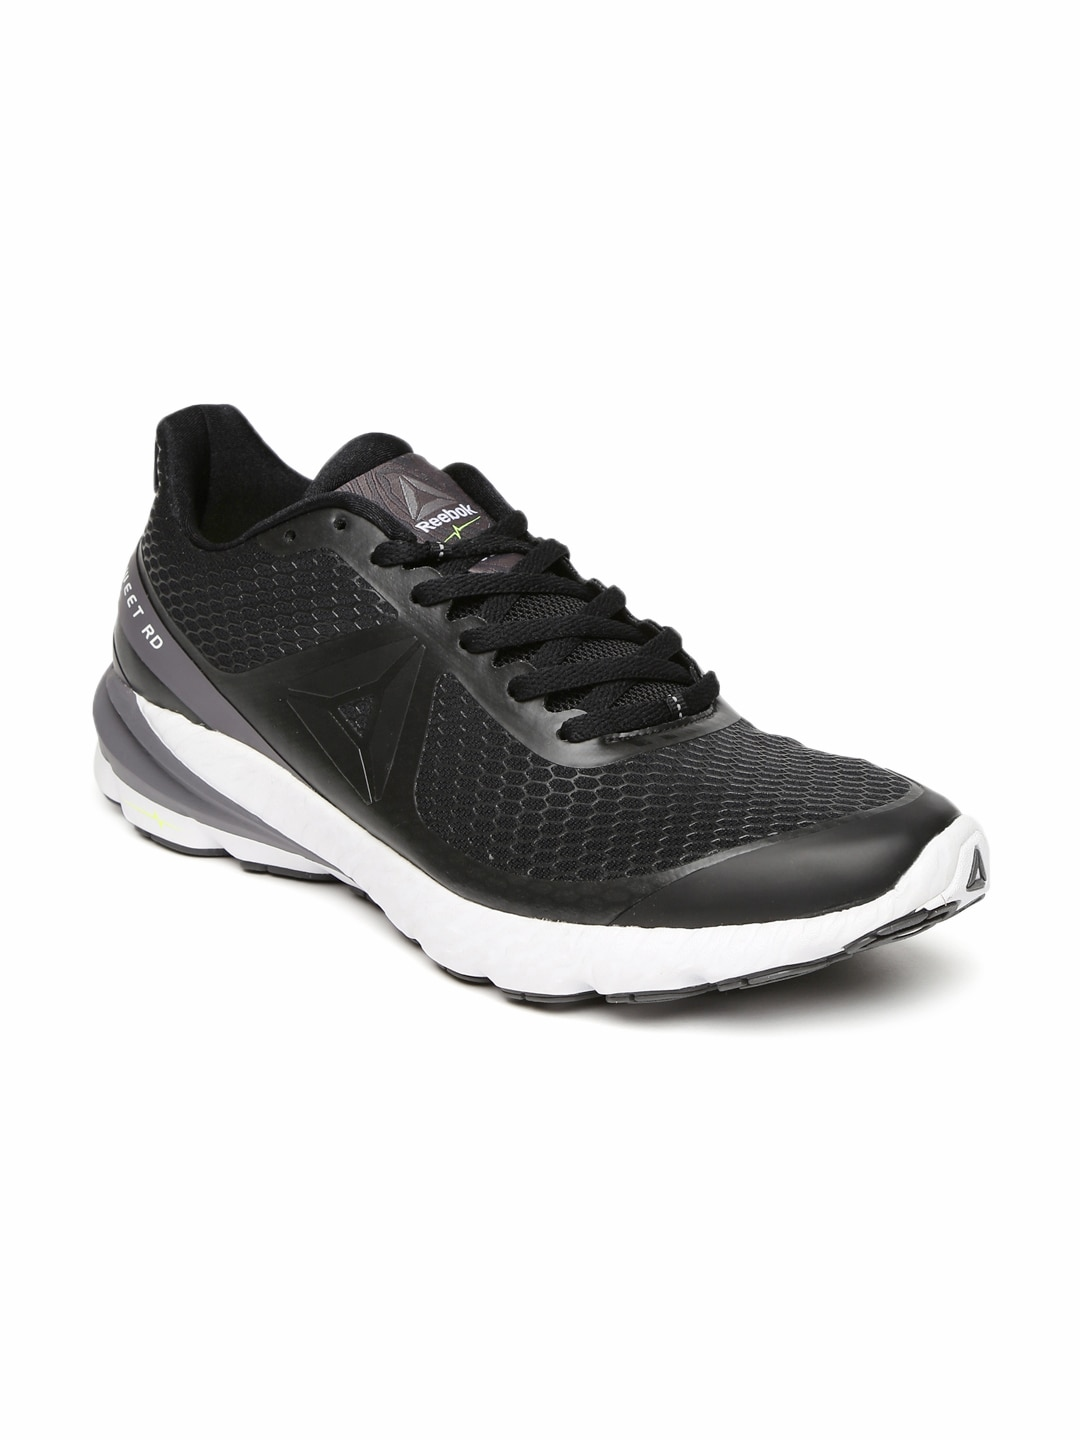 0a6055e0fad Buy Reebok Men Navy Sublite Authentic 4.0 Running Shoes - Sports ...